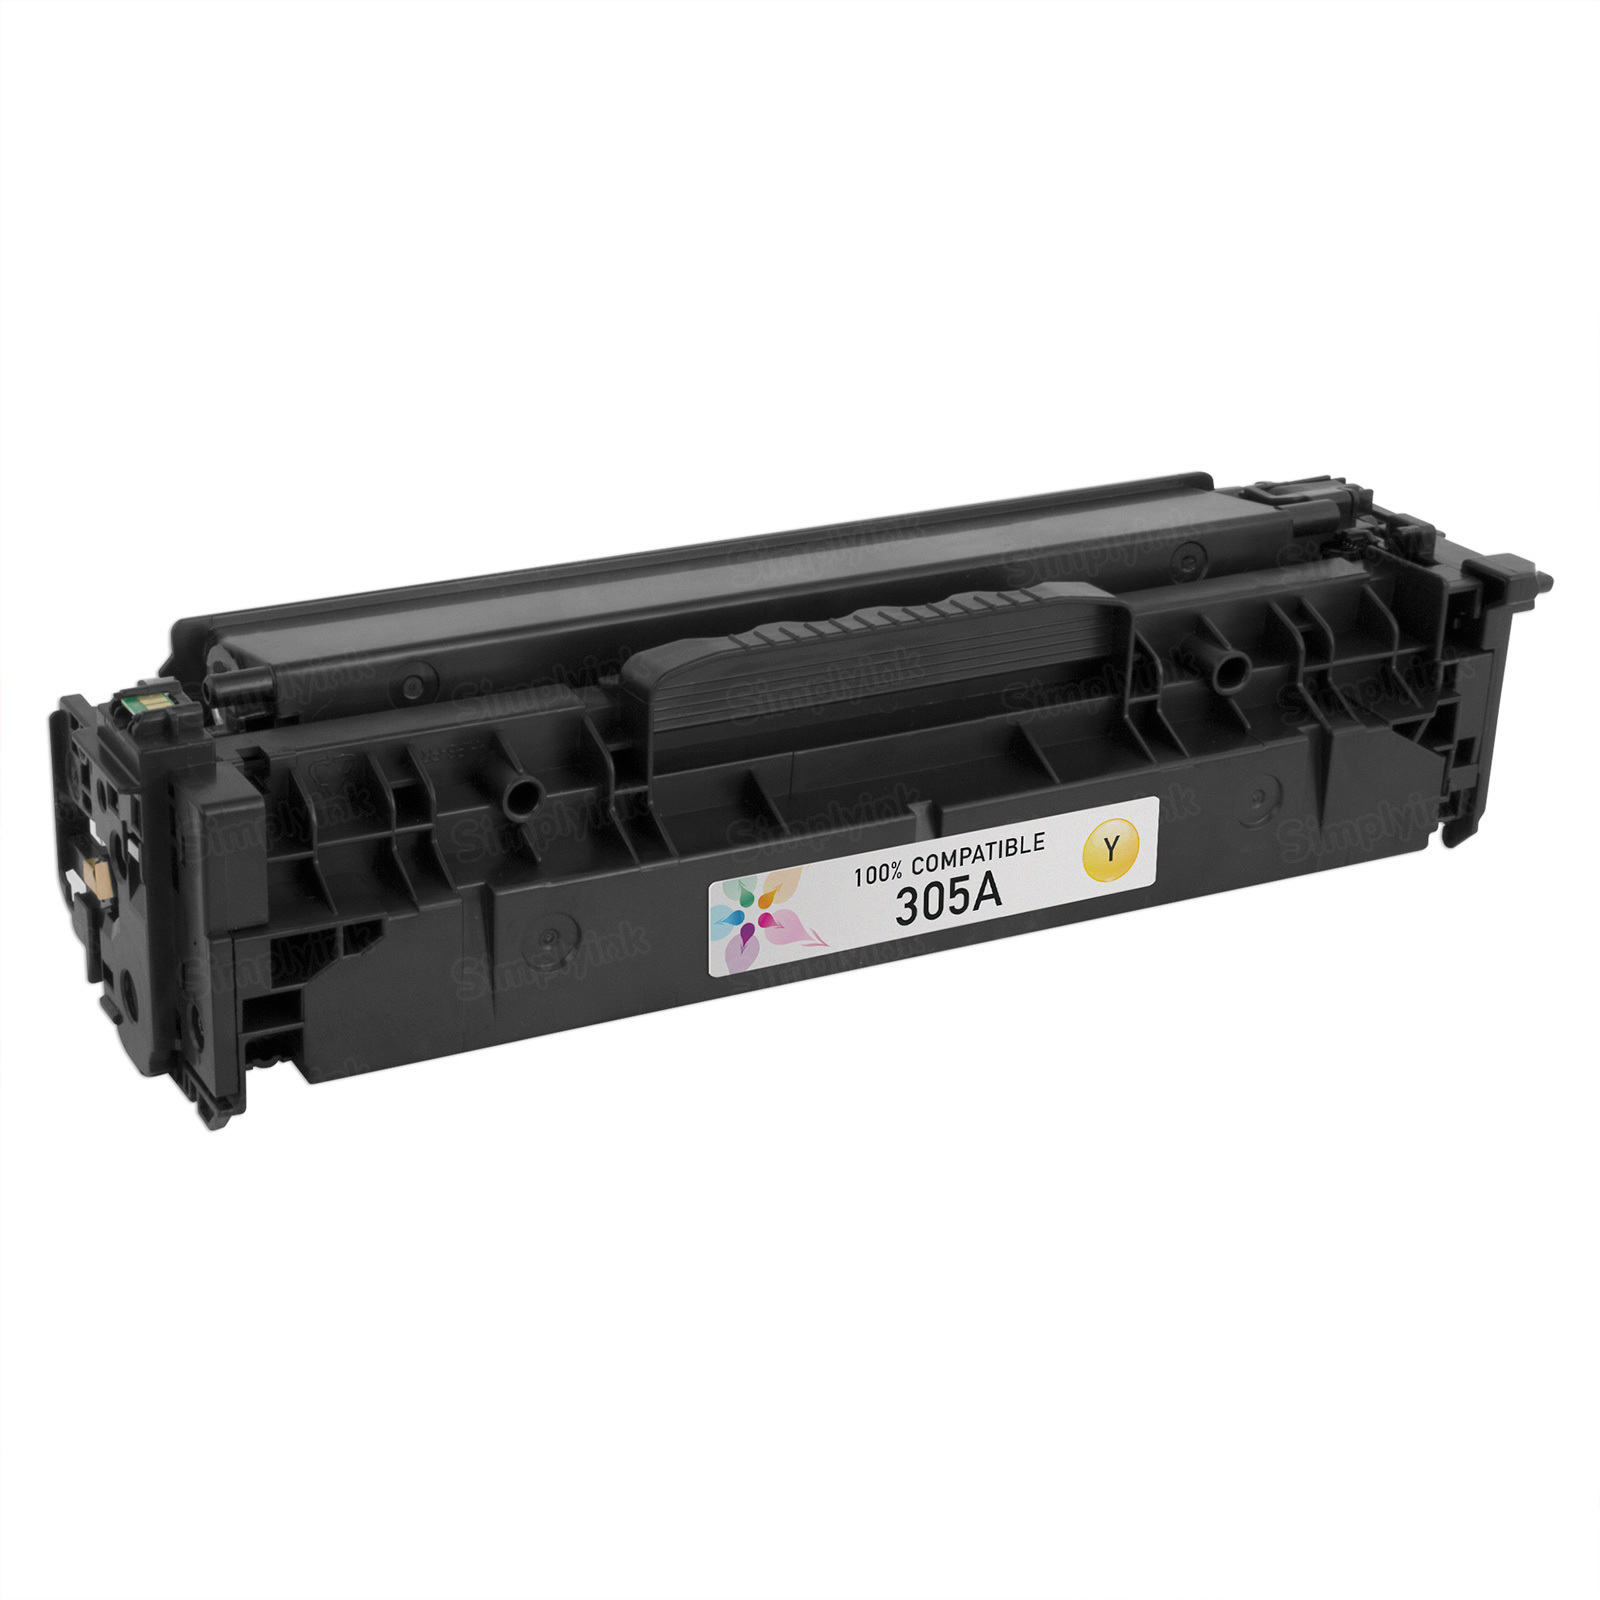 Replacement Yellow Toner for HP 305A